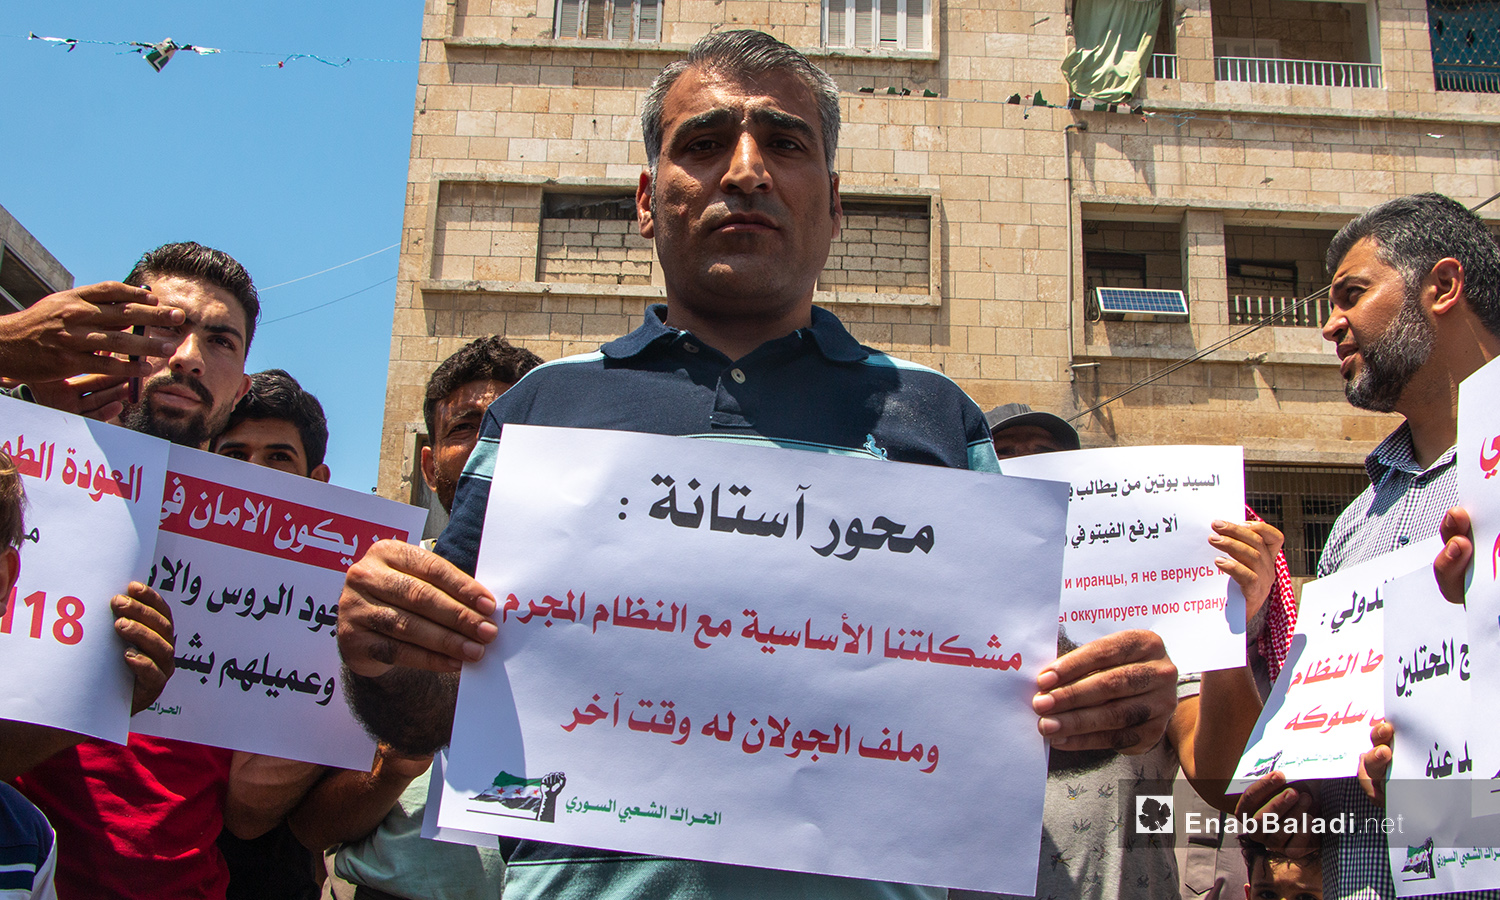 One of Idlib residents carrying a sign addressed to the Astana guarantors in a protest in Idlib city – 03 July 2020 (Enab Baladi / Anas al-Khouli)